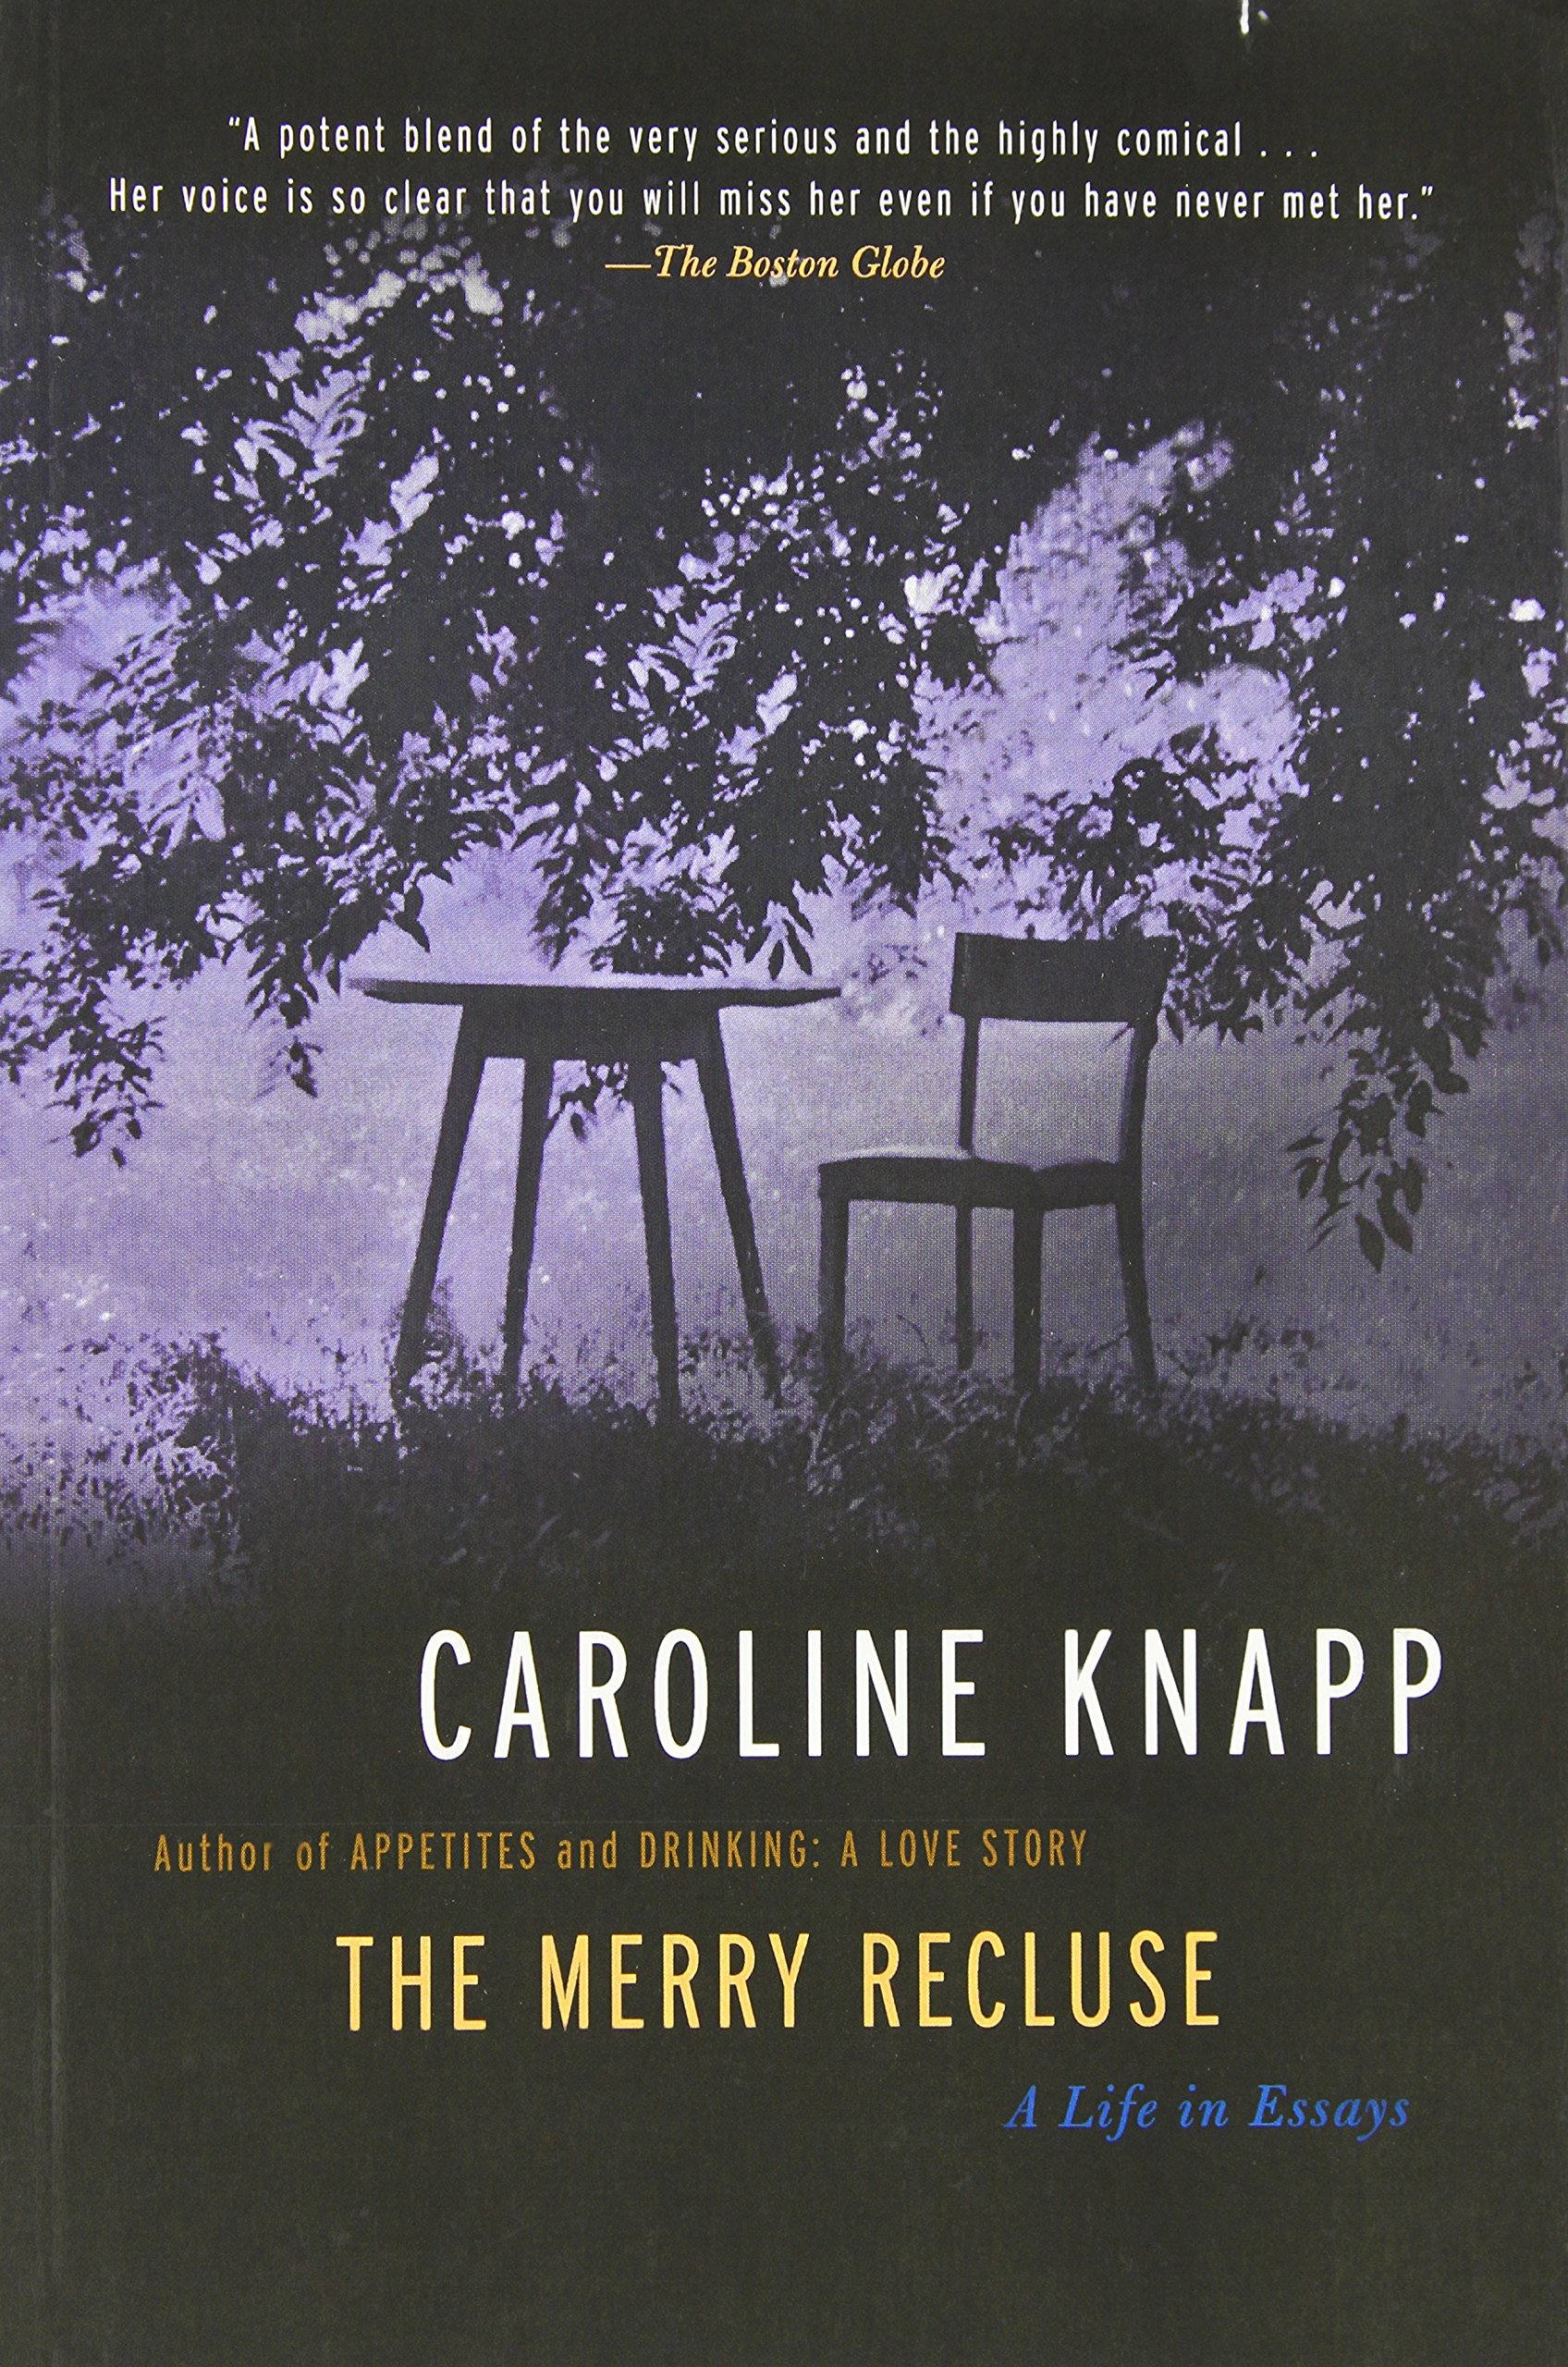 the merry recluse a life in essays caroline knapp 9781582433141 the merry recluse a life in essays caroline knapp 9781582433141 amazon com books